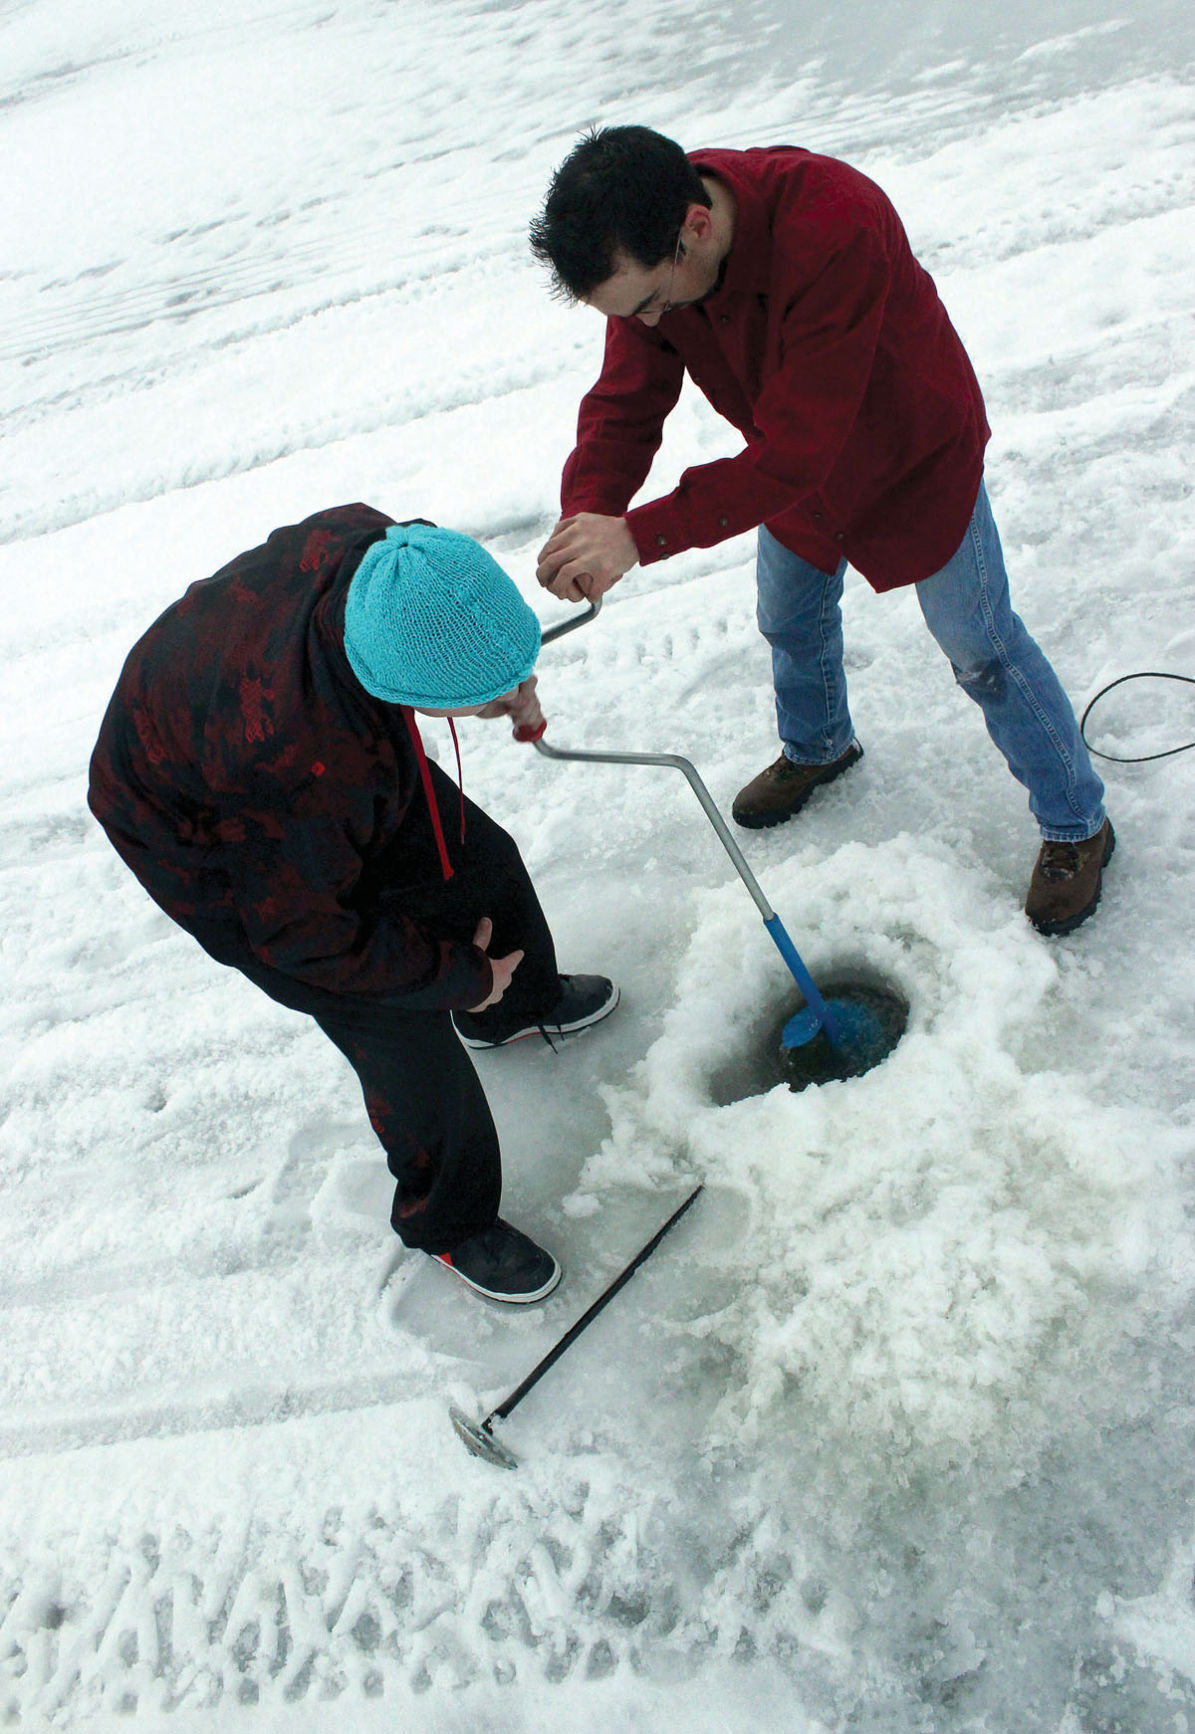 Magic reservoir ice fishing tourney goes ahead outdoors for Ice fishing tournament